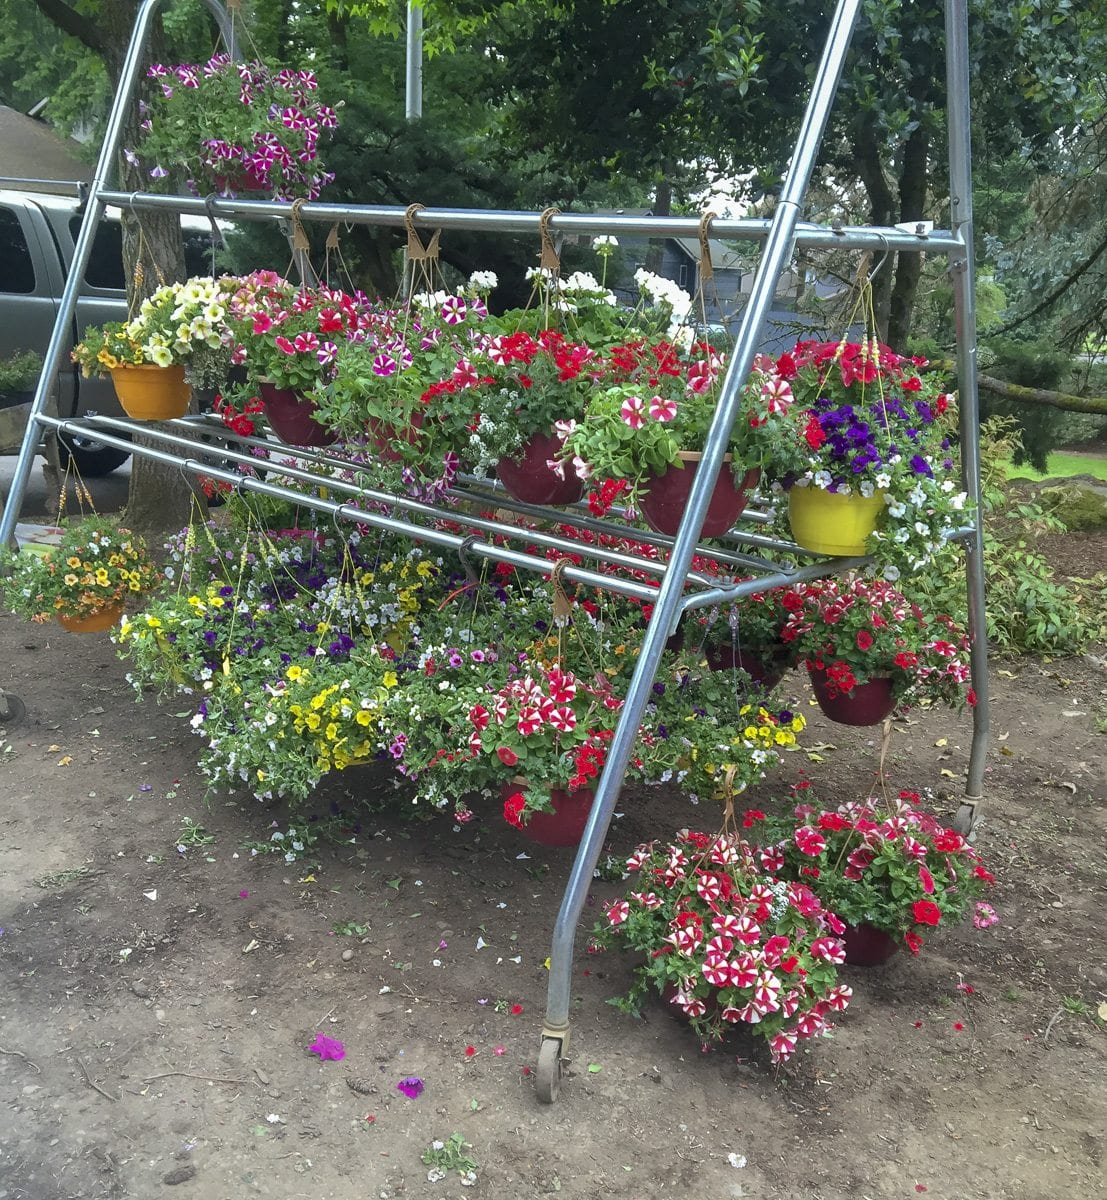 """Vancouver police have arrested a suspect described as a """"prolific garden center thief"""" and recovered 157 stolen plants, a garden cart, a display rack and methamphetamine after a string of thefts reported at the Fred Meyer located at 11325 SE Mill Plain Boulevard. Photo courtesy of Vancouver Police Department"""